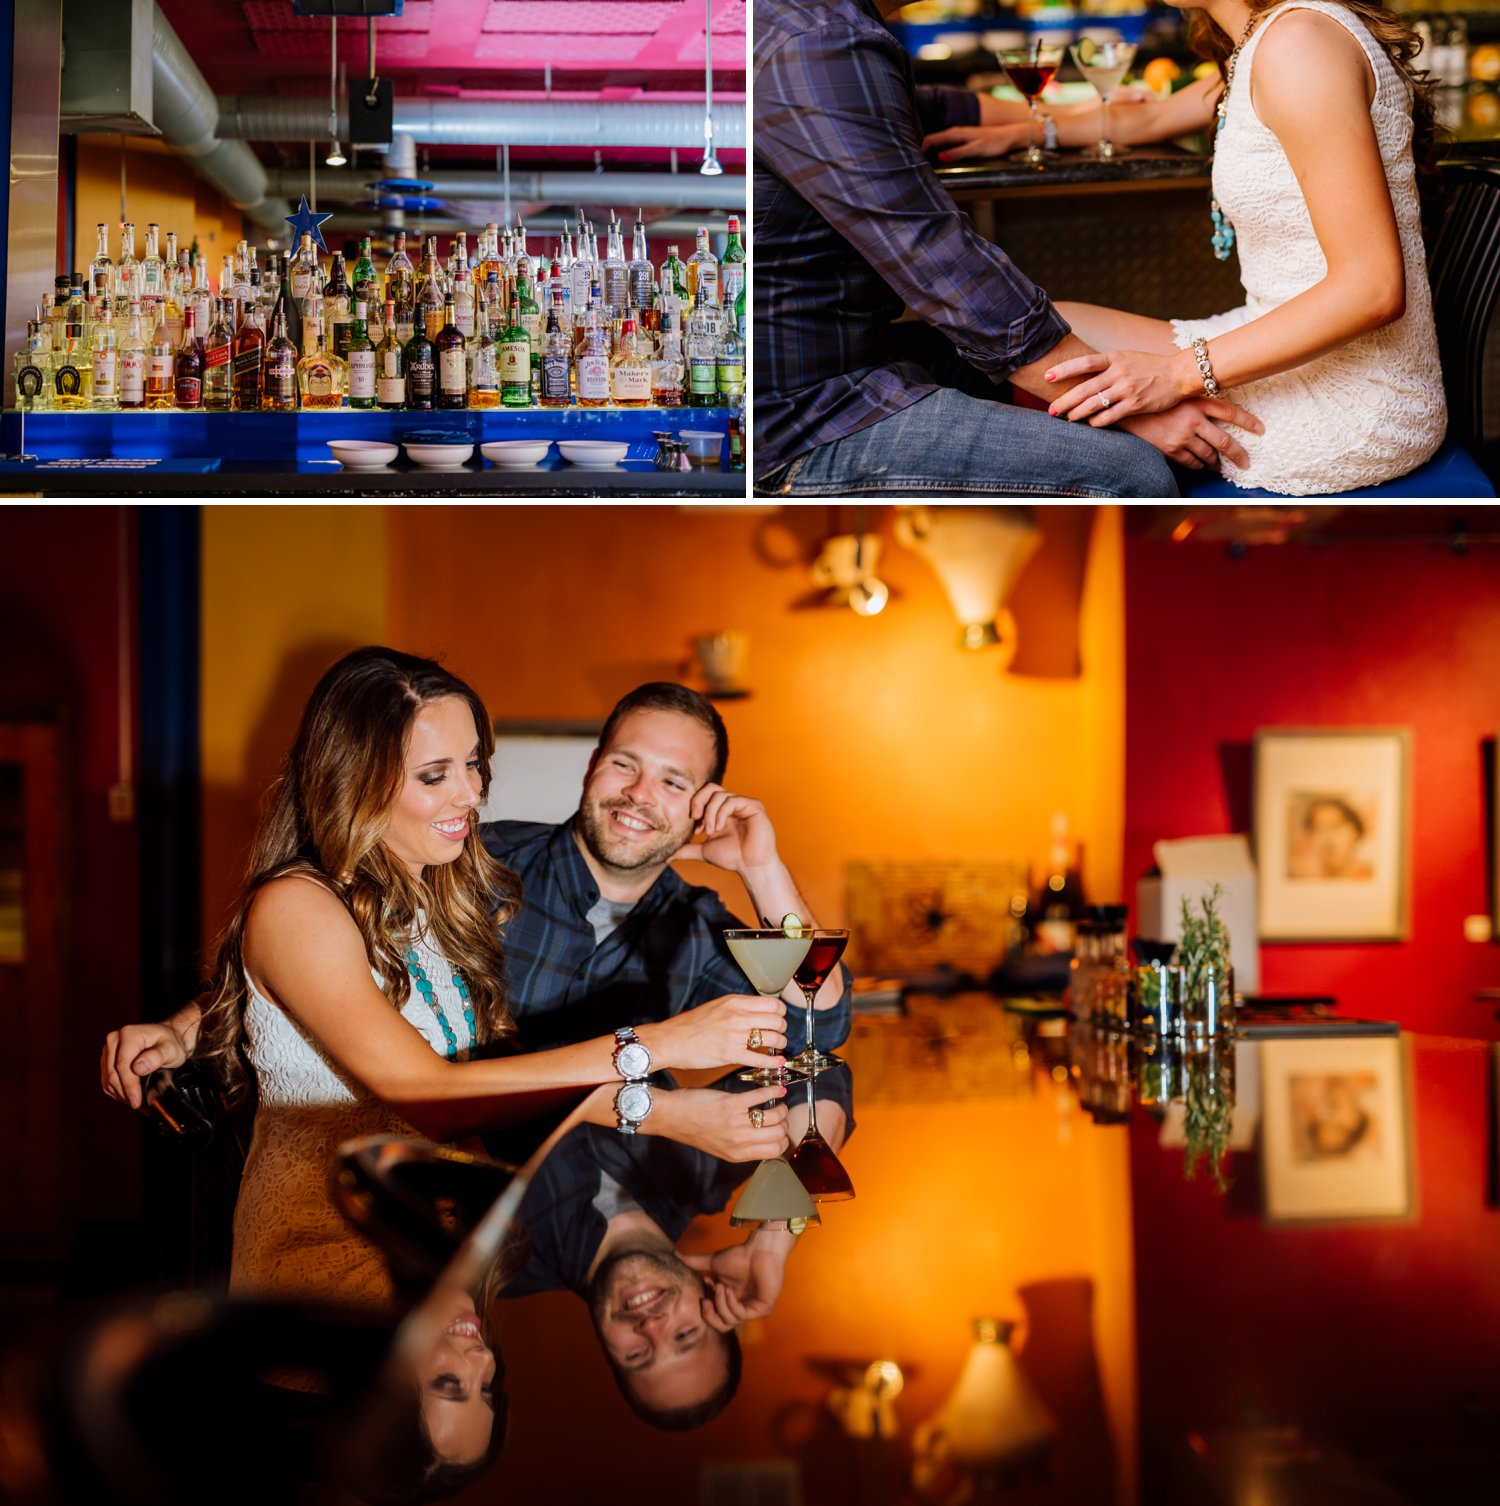 I want to do my engagement shoot in a bar! This couple looks so relaxed as they sip cocktails as the bar for their engagement photos. Photo by Maddie Mae Photography.